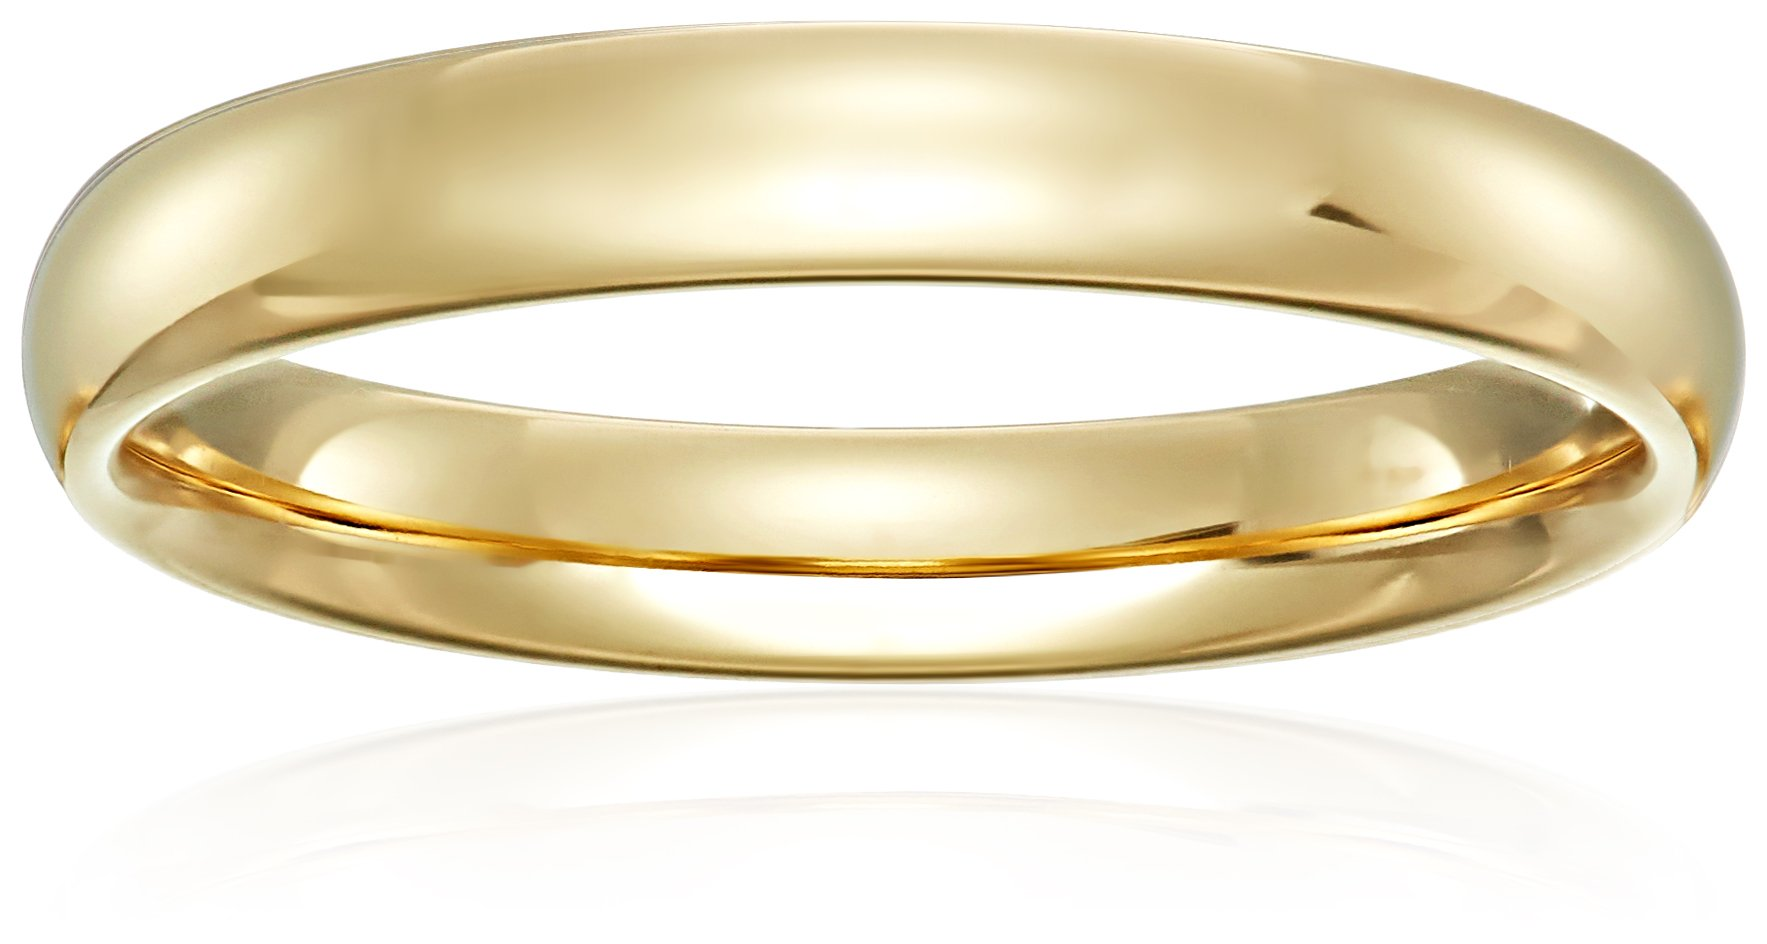 Standard Comfort-Fit 18K Yellow Gold Band, 4mm, Size 8